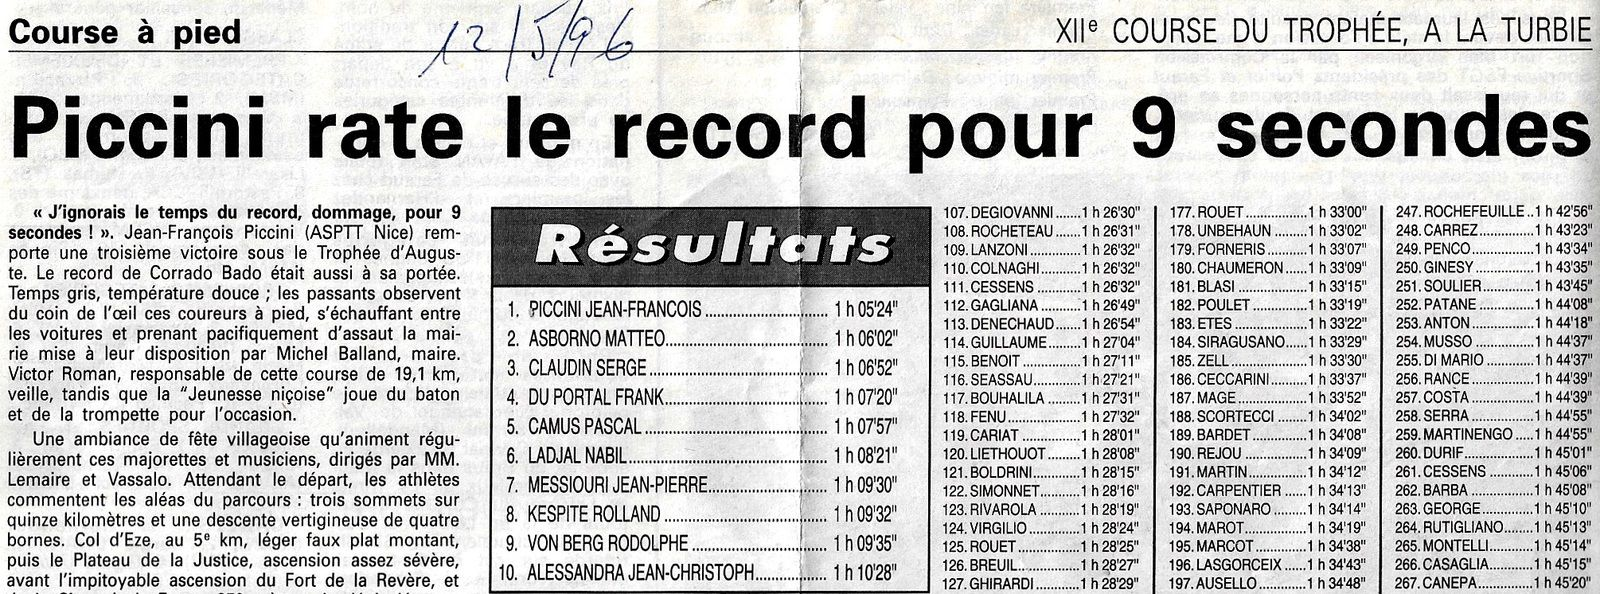 LA TURBIE XII° course du Trophée 12.5.1996